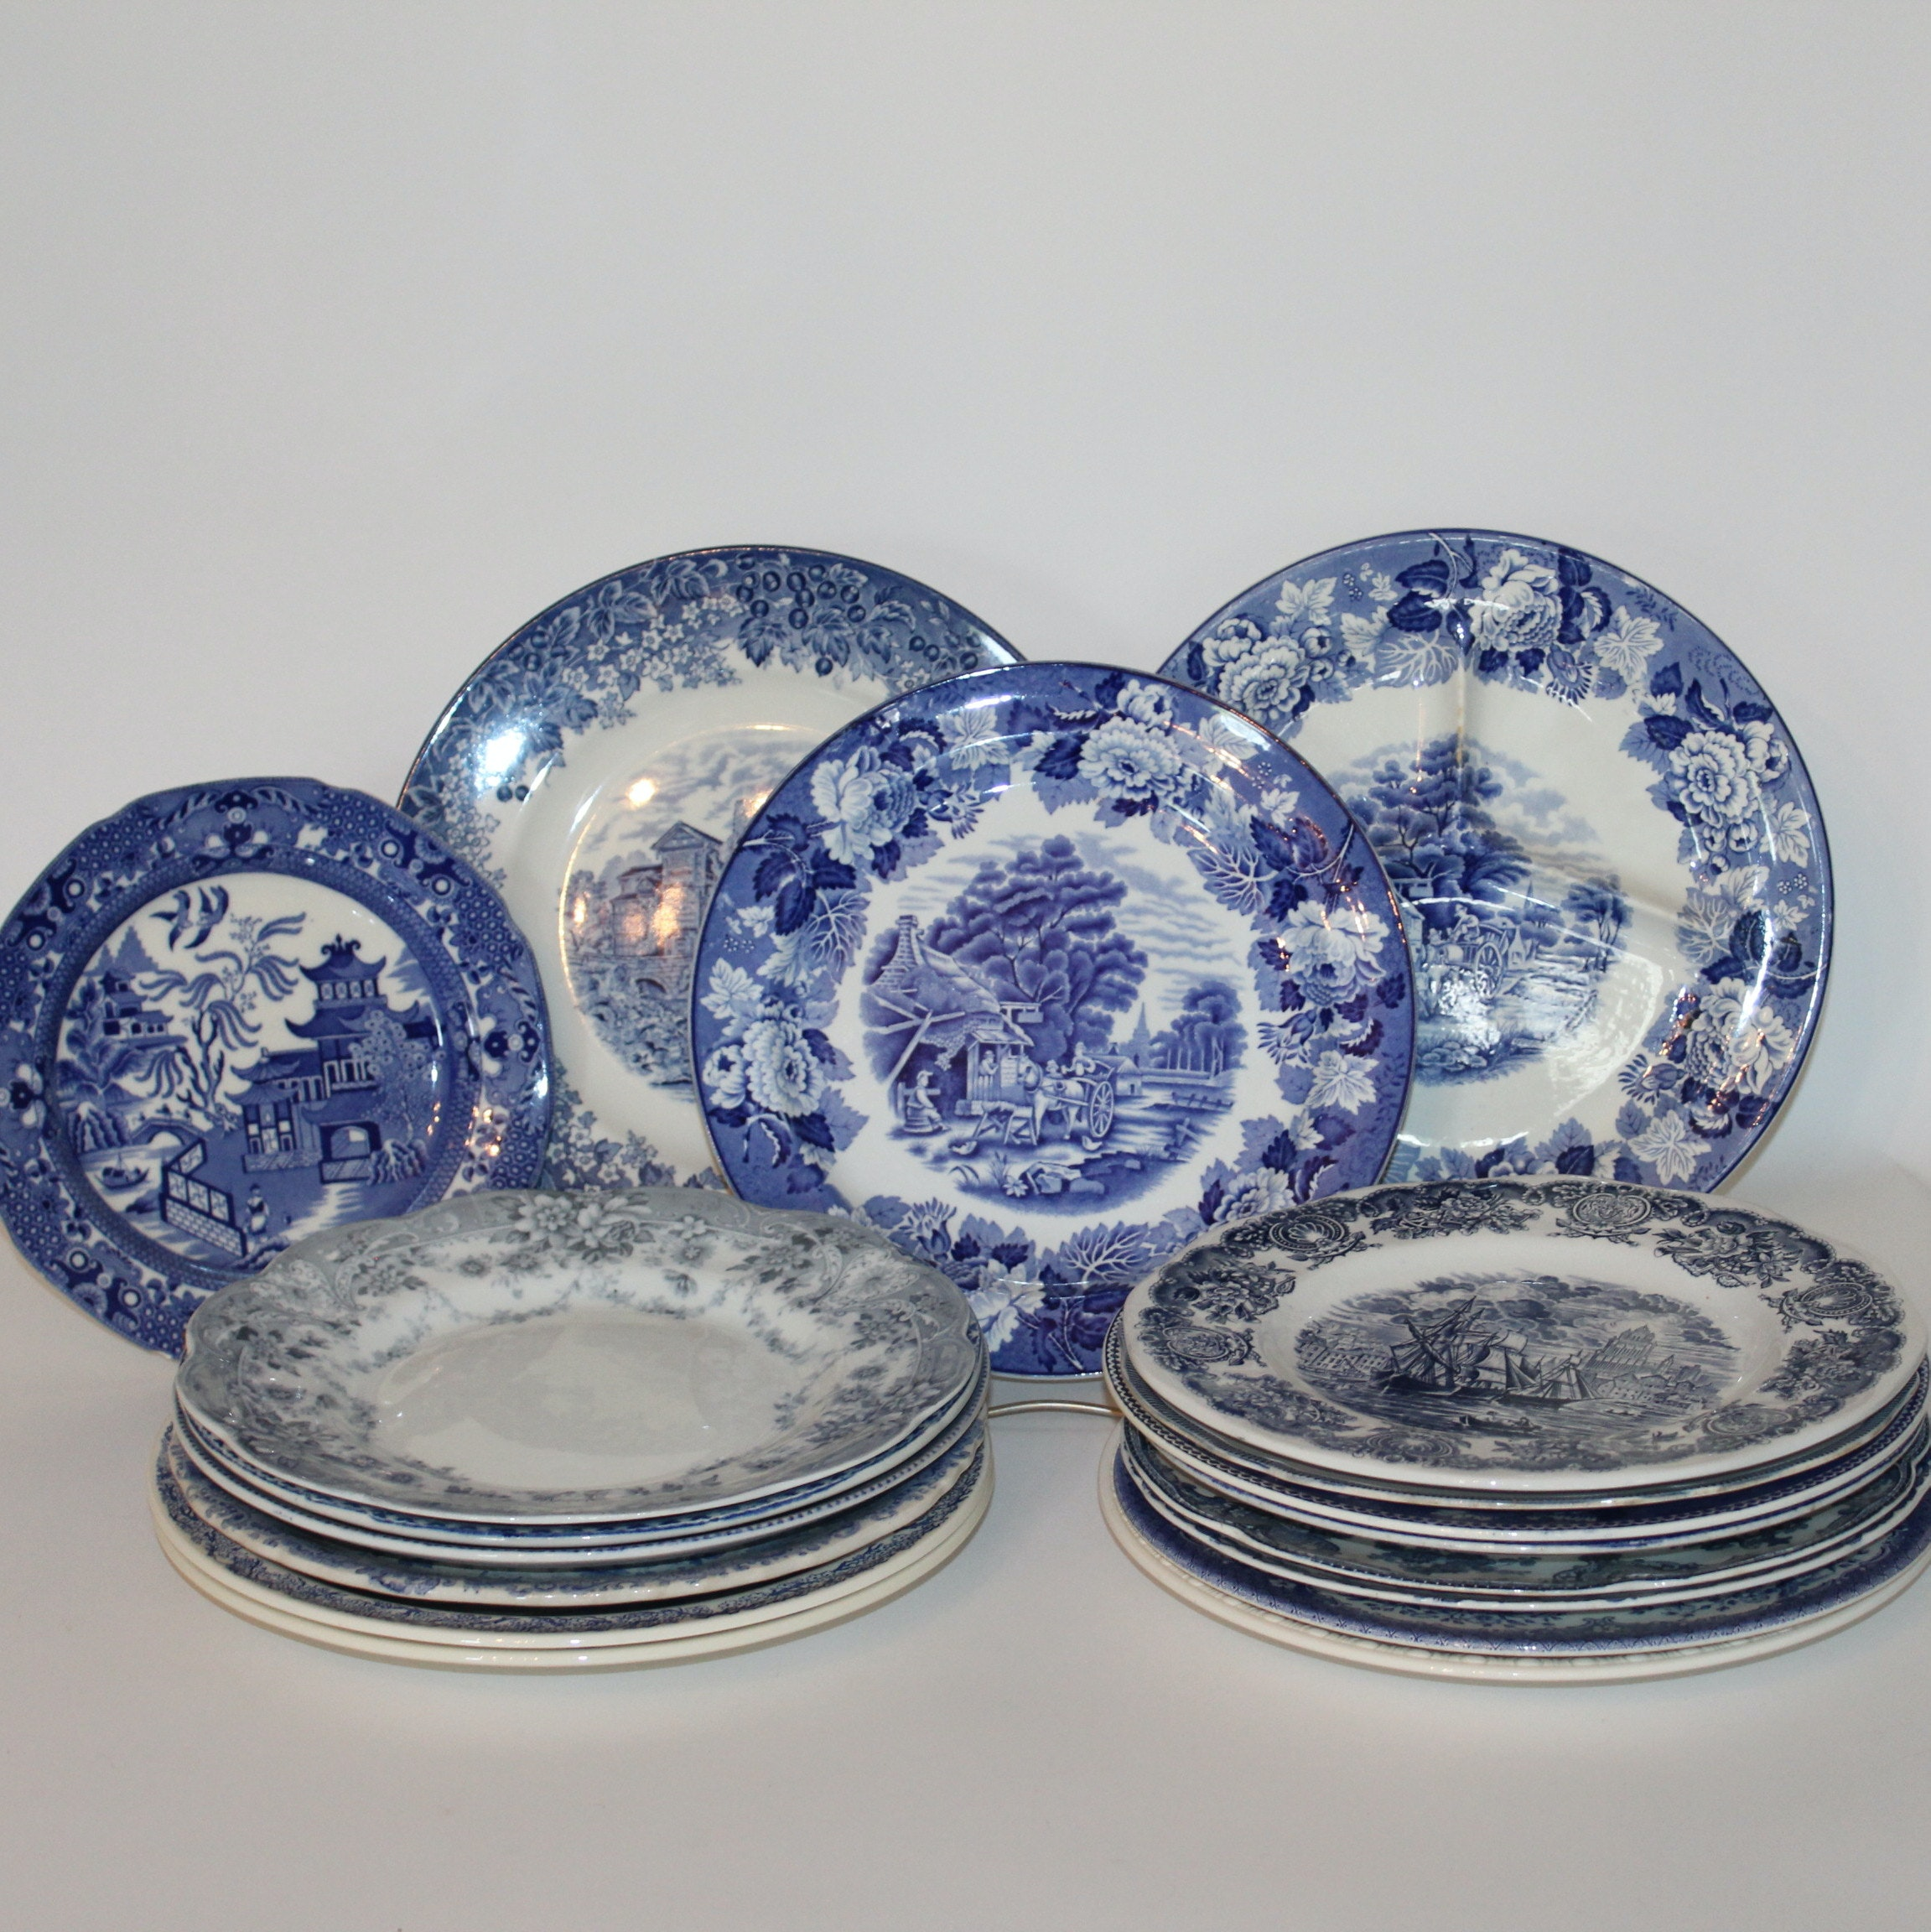 Assorted Transferware Plates in Shades of Blue